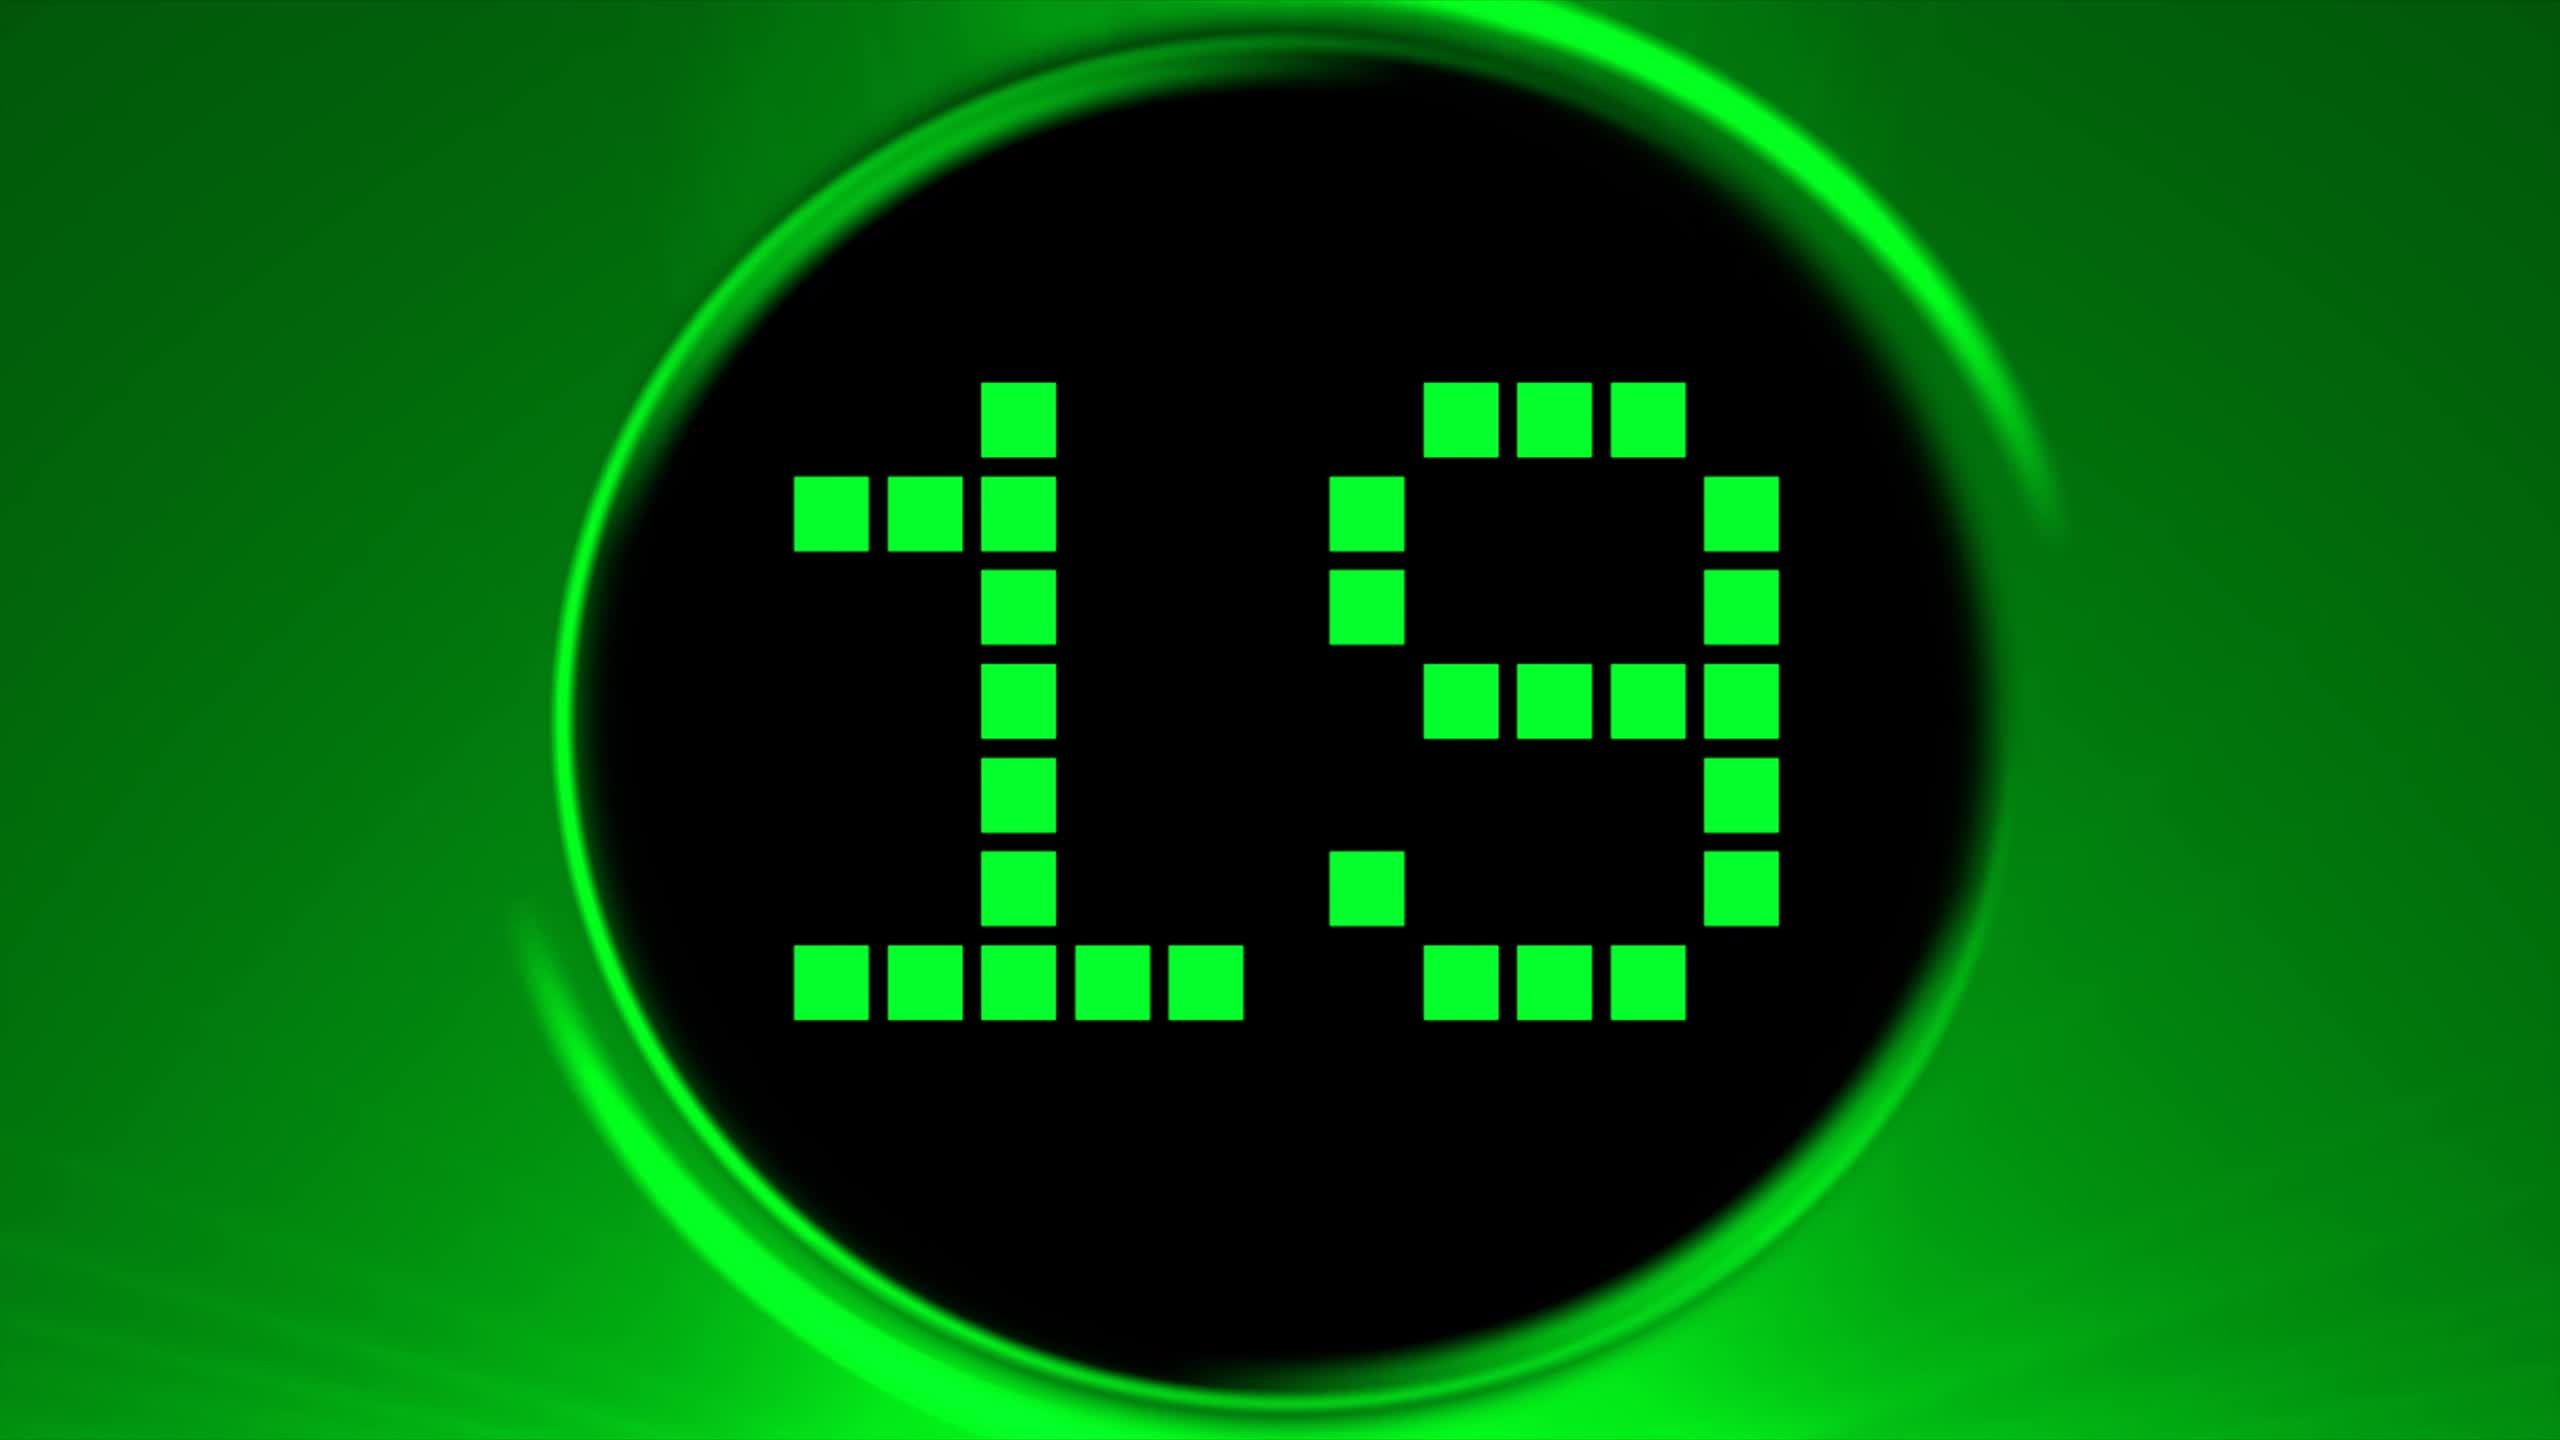 Green Countdown Timer 30 sec ( v 188 ) LED clock timer with sound effects HD GIF